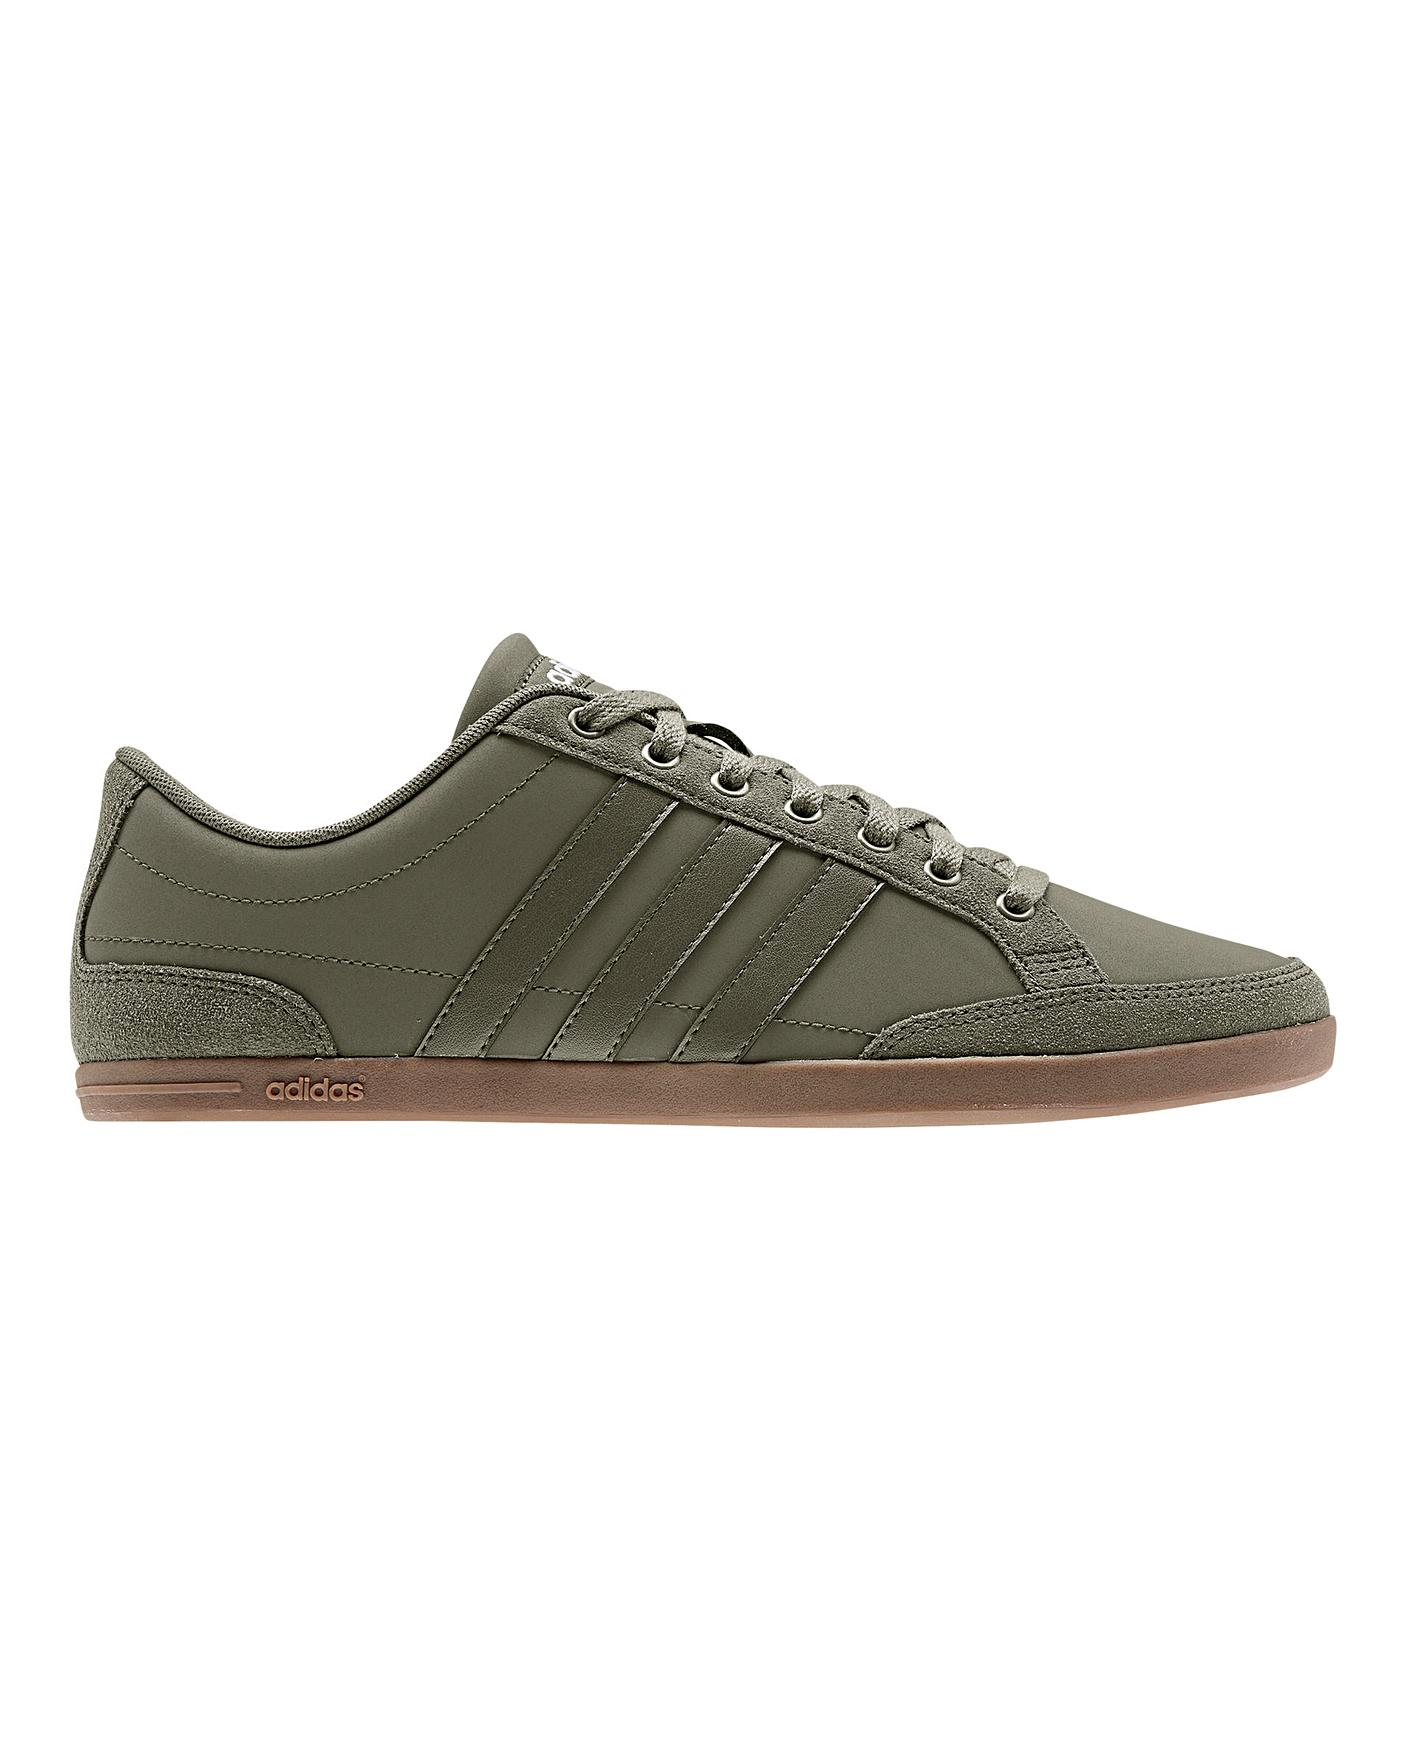 adidas Caflaire Trainers | J D Williams